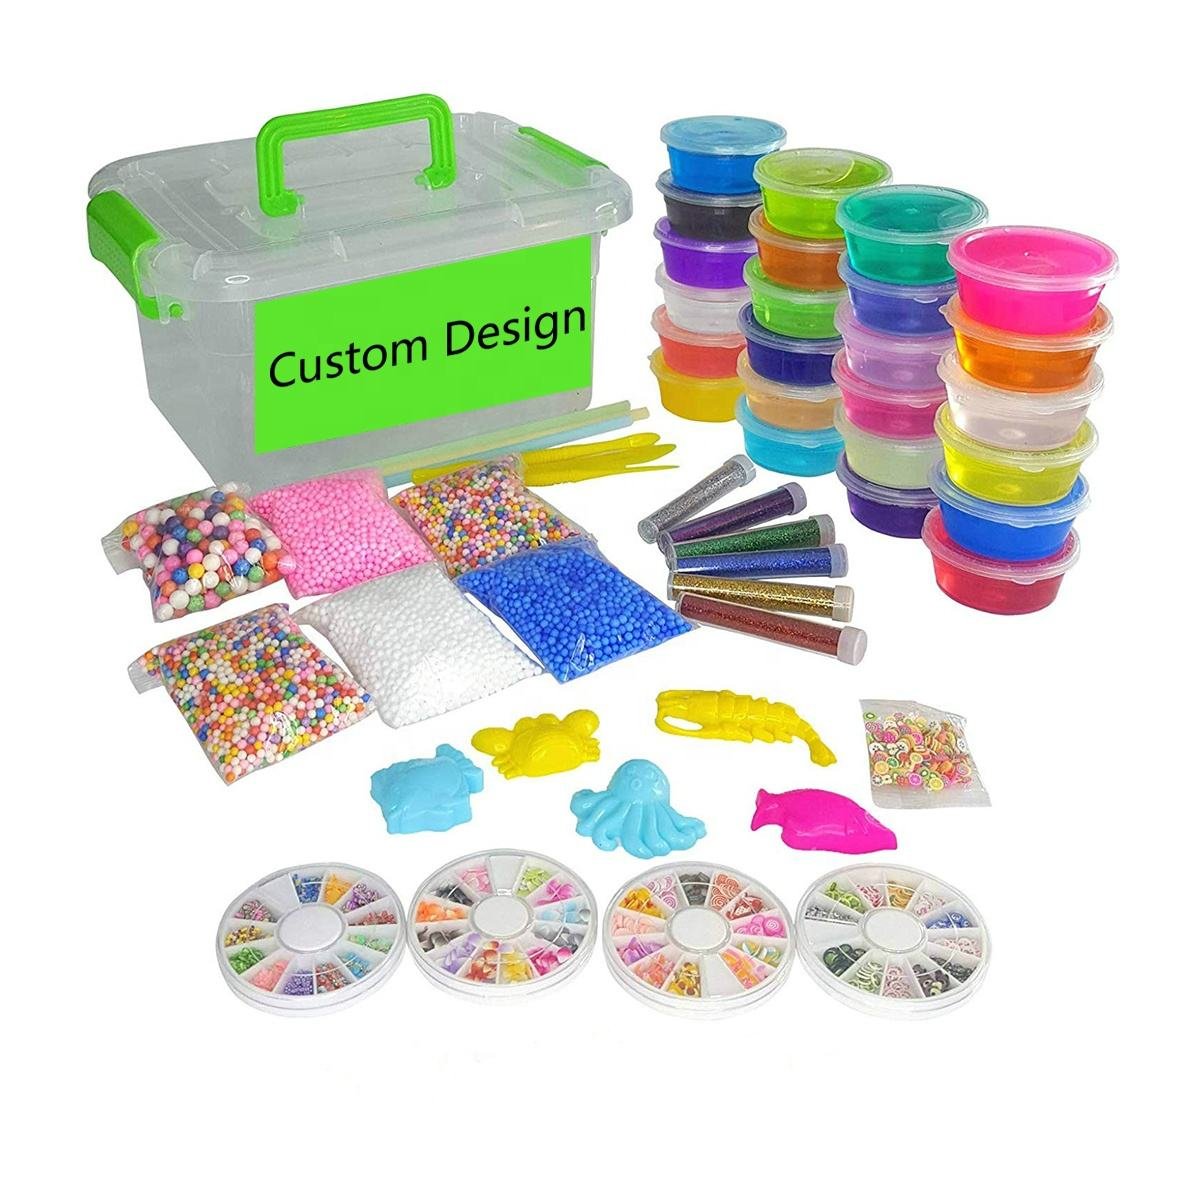 Crystal Slime Making Kit Comes with 24 Colors Slime 6 Colorful Foam Balls 250 Fruit Slice 6 Glitter Shake Jars for Kids Aged 6+